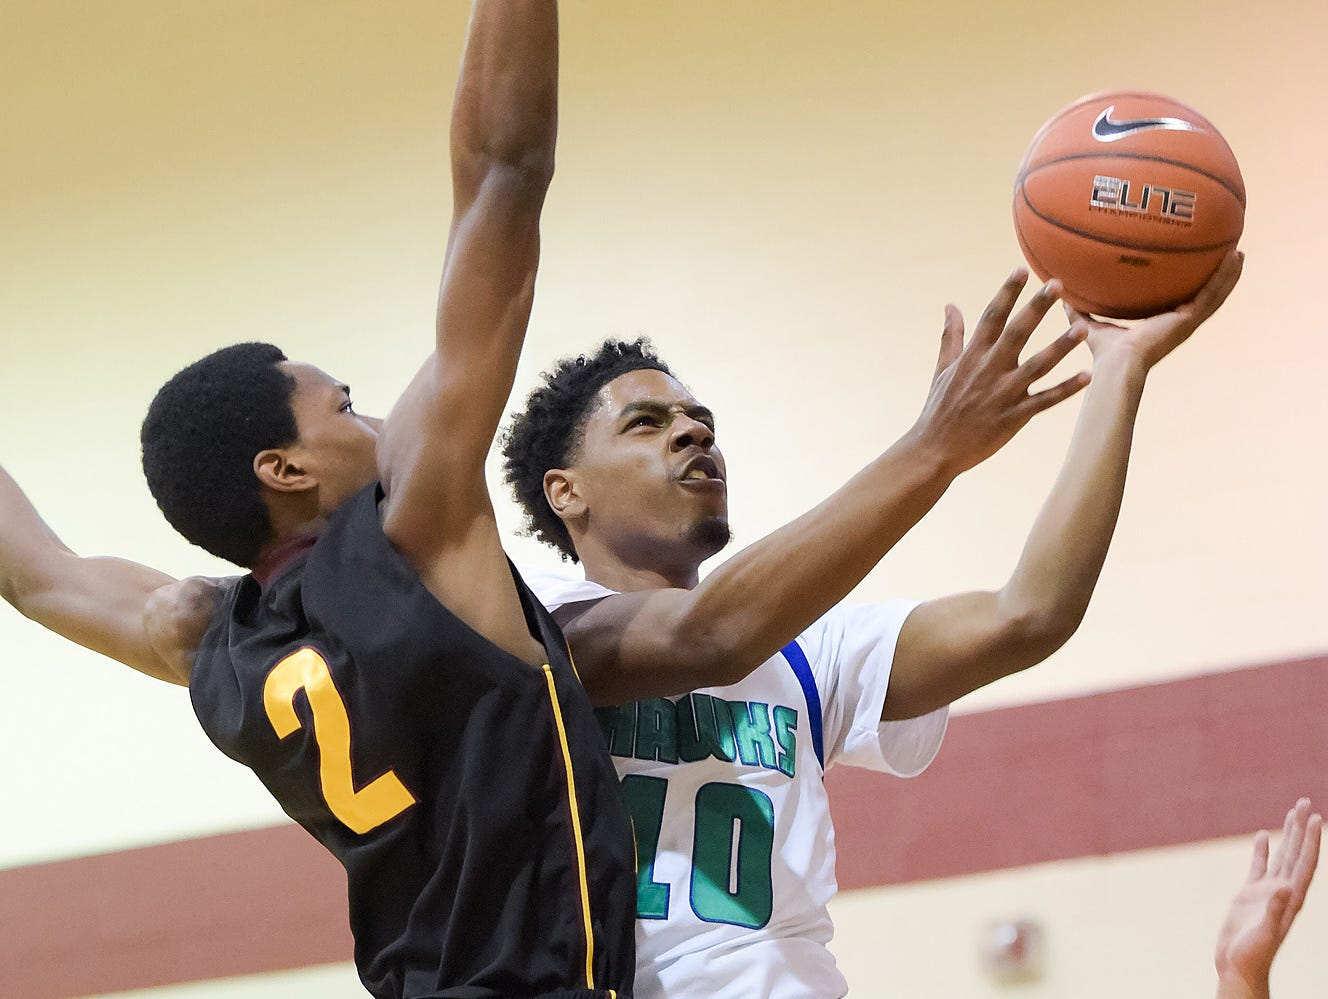 Lamar Hamrick (10) goes to the basket against Precious Achuwa (2) of Our Saviour Lutheran of Bronx, N.Y., at the Concord Classic on Monday.